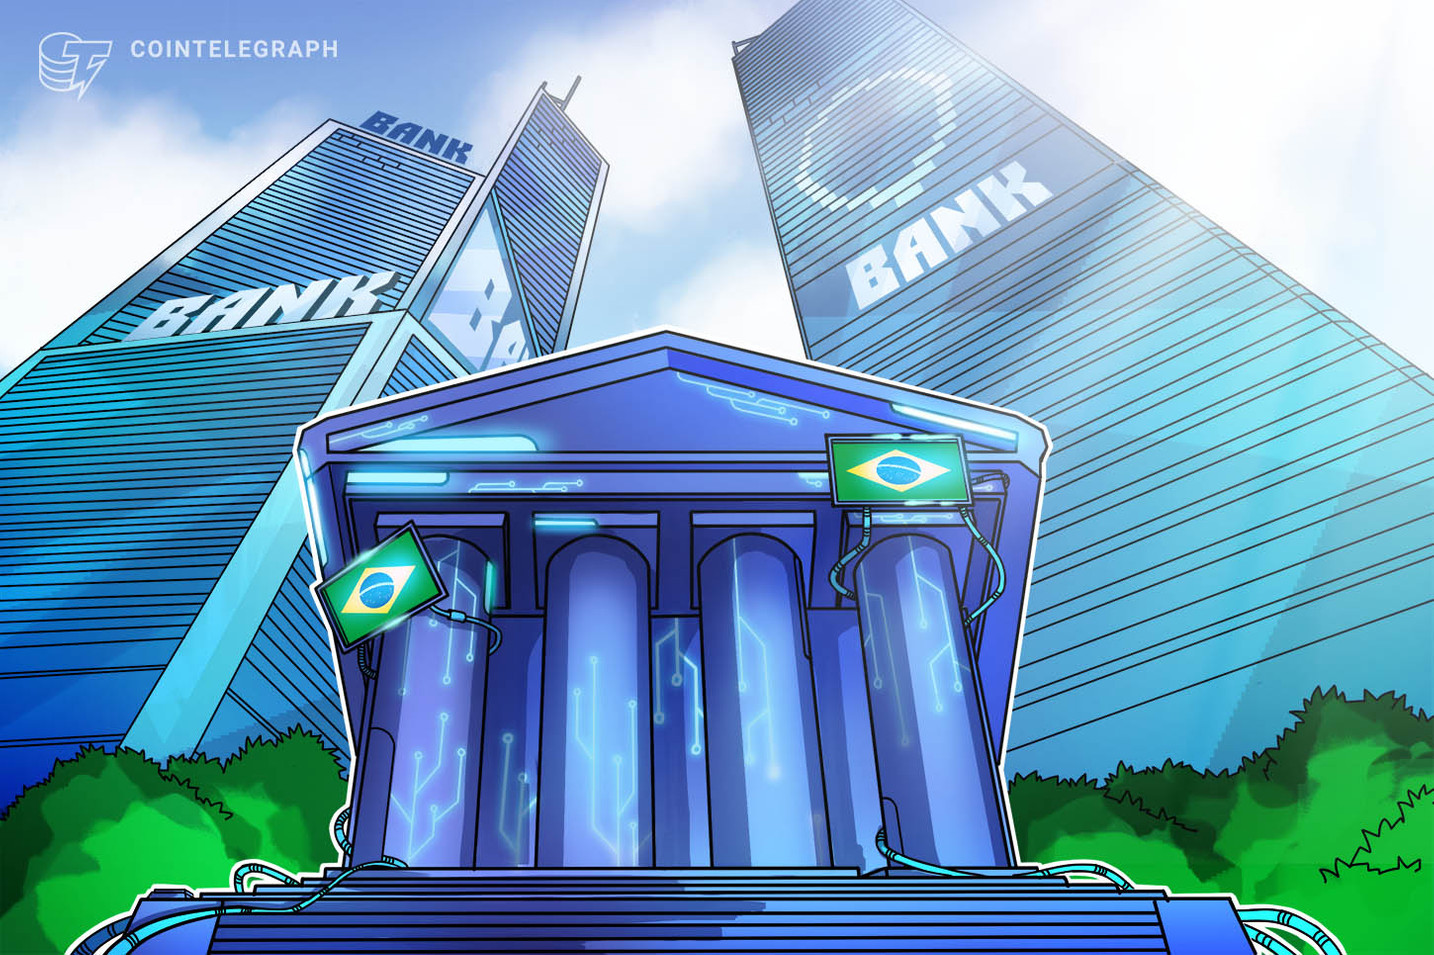 VP of Largest Brazilian Bank: Local Banks to Soon Introduce Unique Blockchain Platform